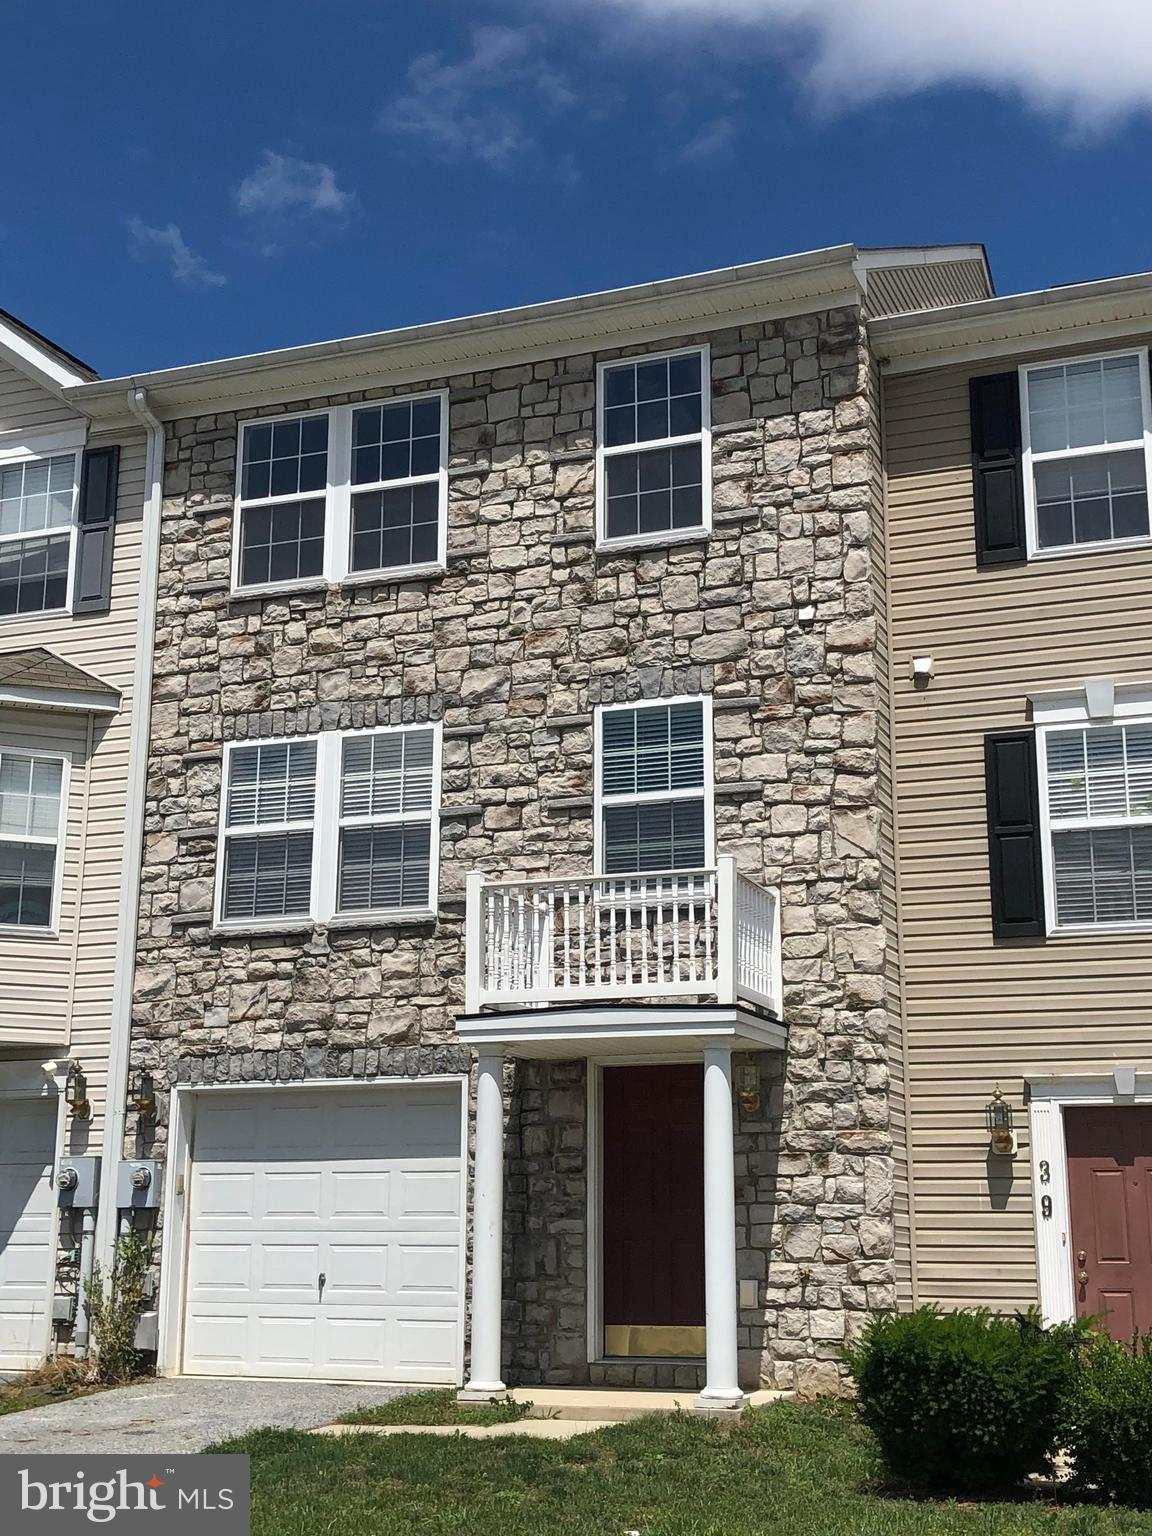 Well maintained 3 bedroom 2.5 bath townhouse. Newer hardwood floors throughout the main level and ha